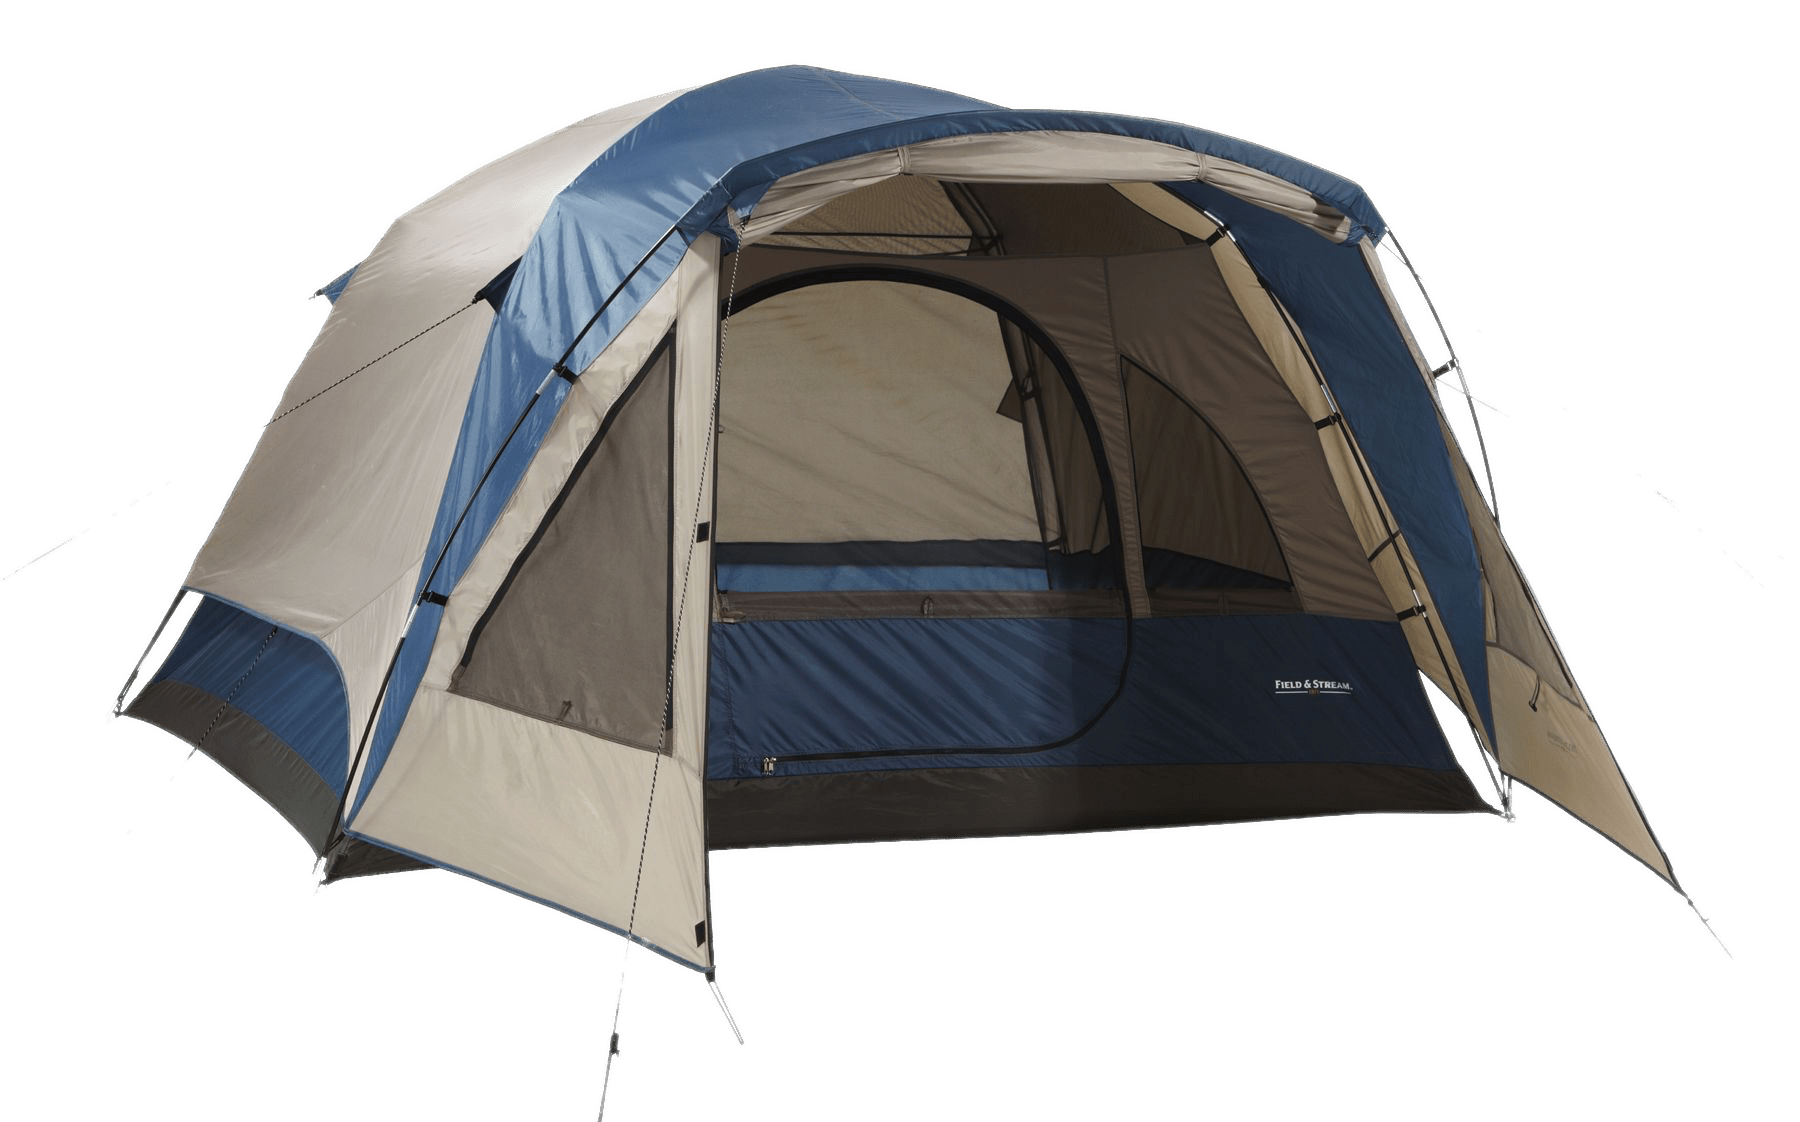 Tent transparent. Dome camping png stickpng